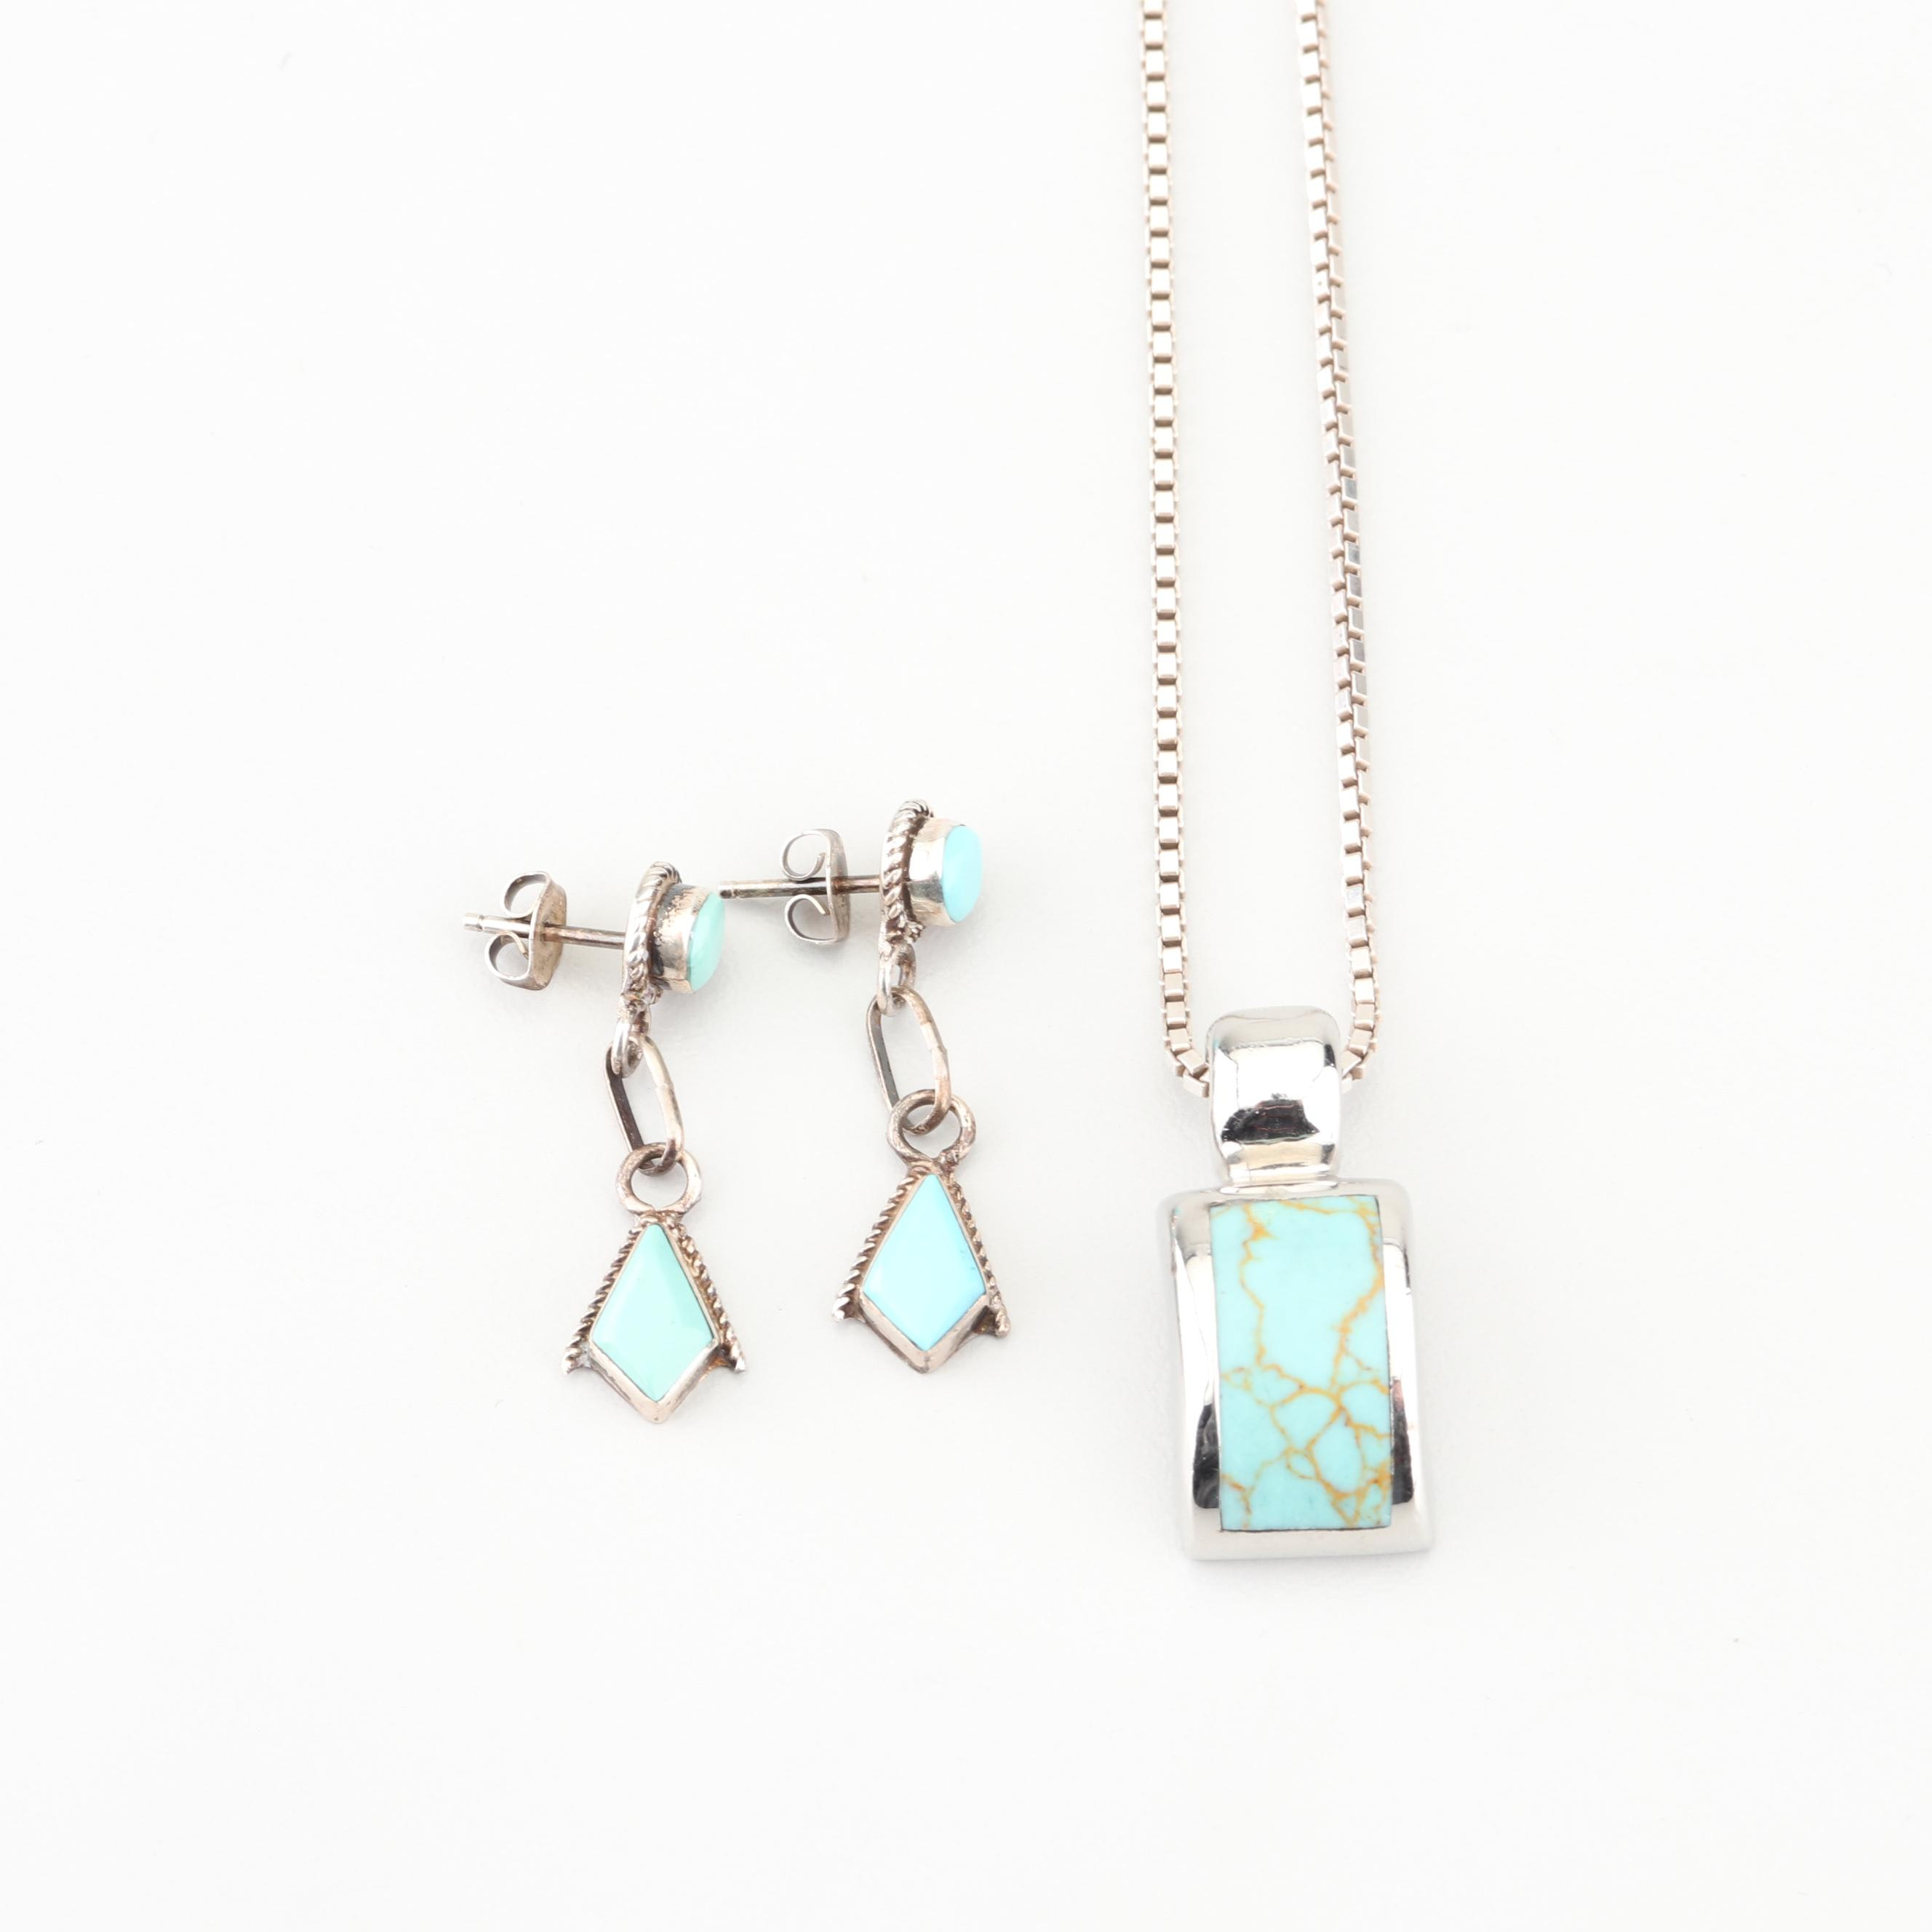 Sterling Silver Turquoise Necklace and Earrings